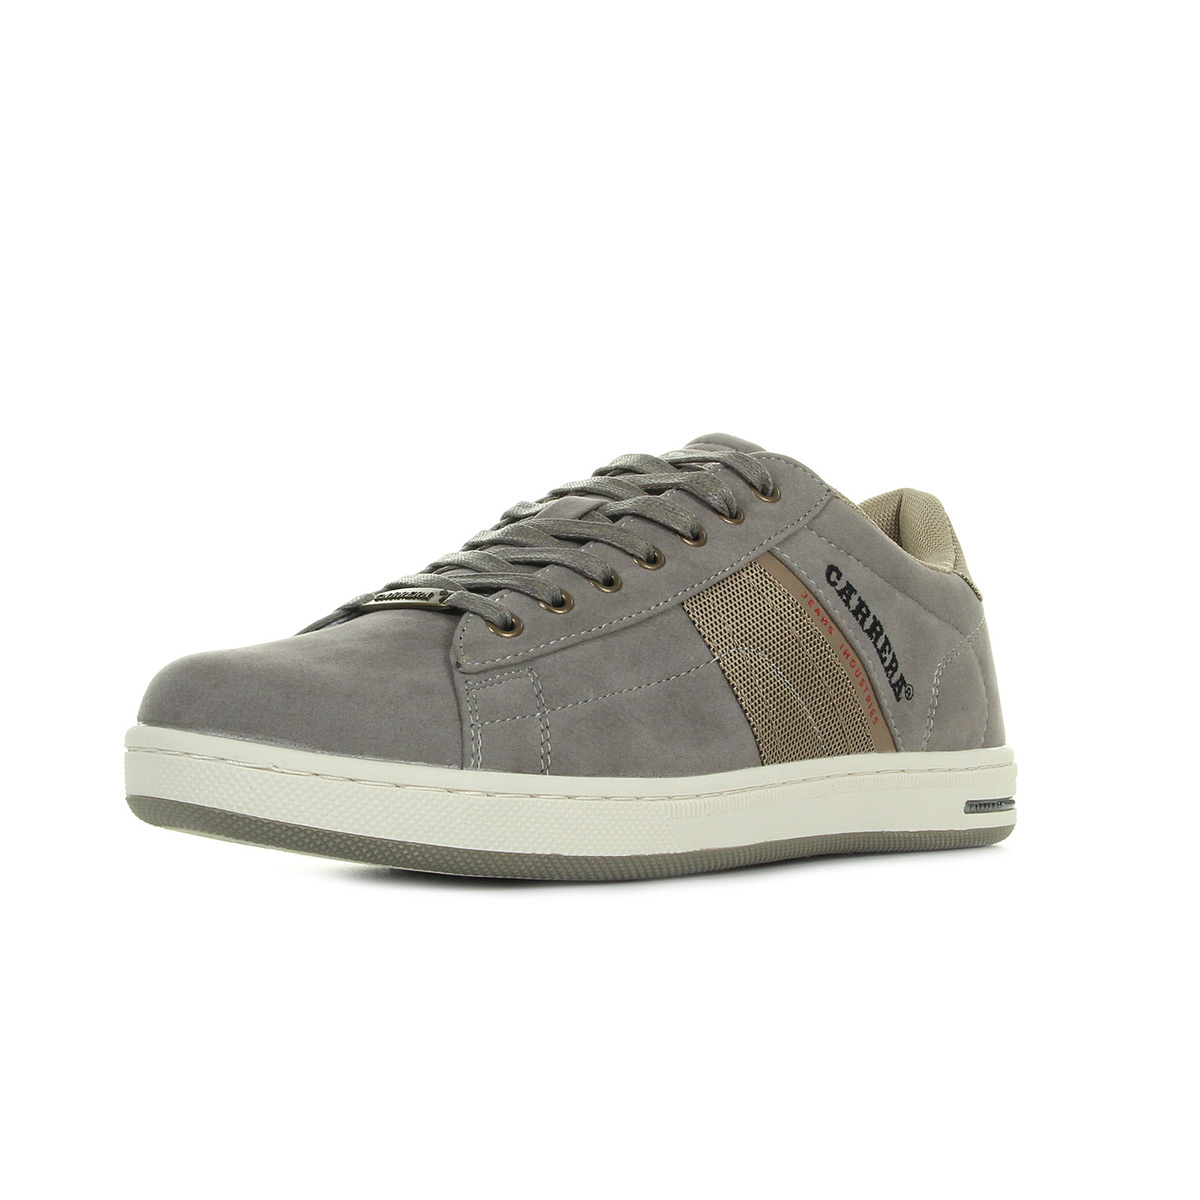 Carrera Play Lth Cudio marron - Chaussures Baskets basses Homme